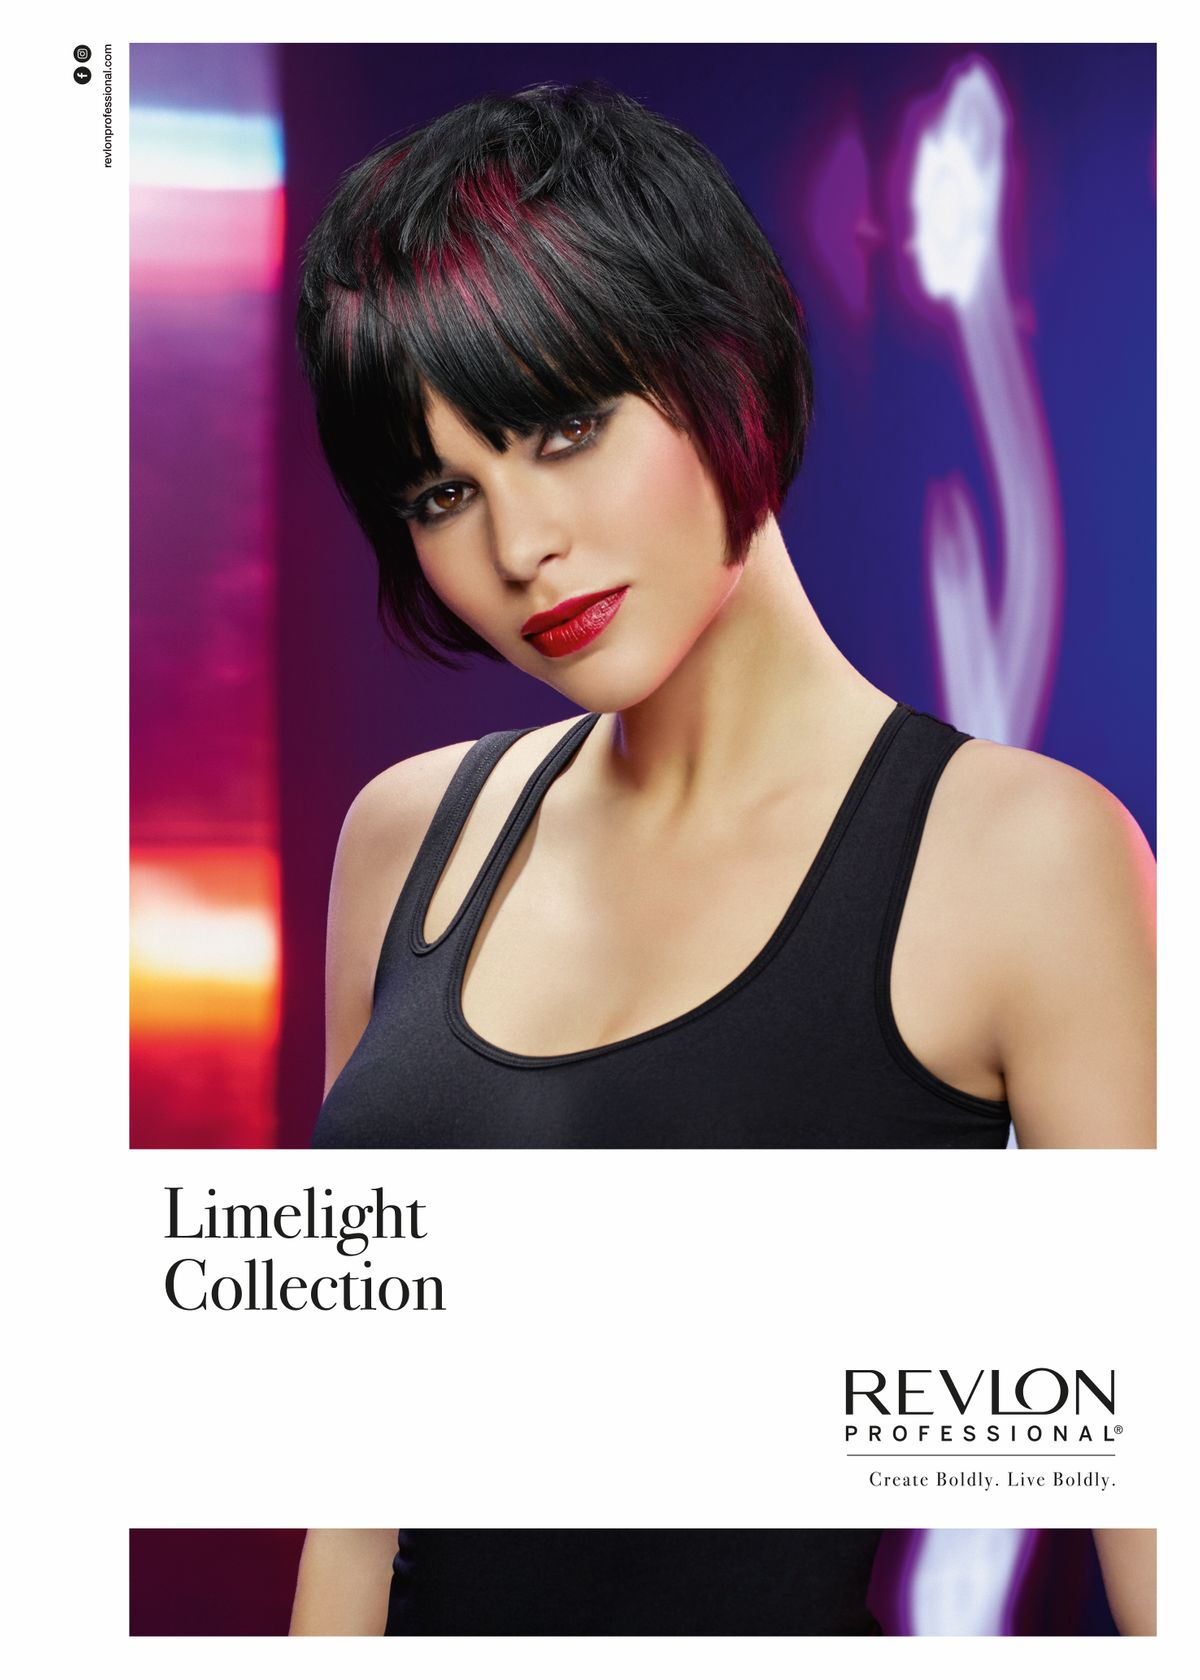 Archiv_Modelle_limelight_Poster-Limelight-Plumwine-Roots-2